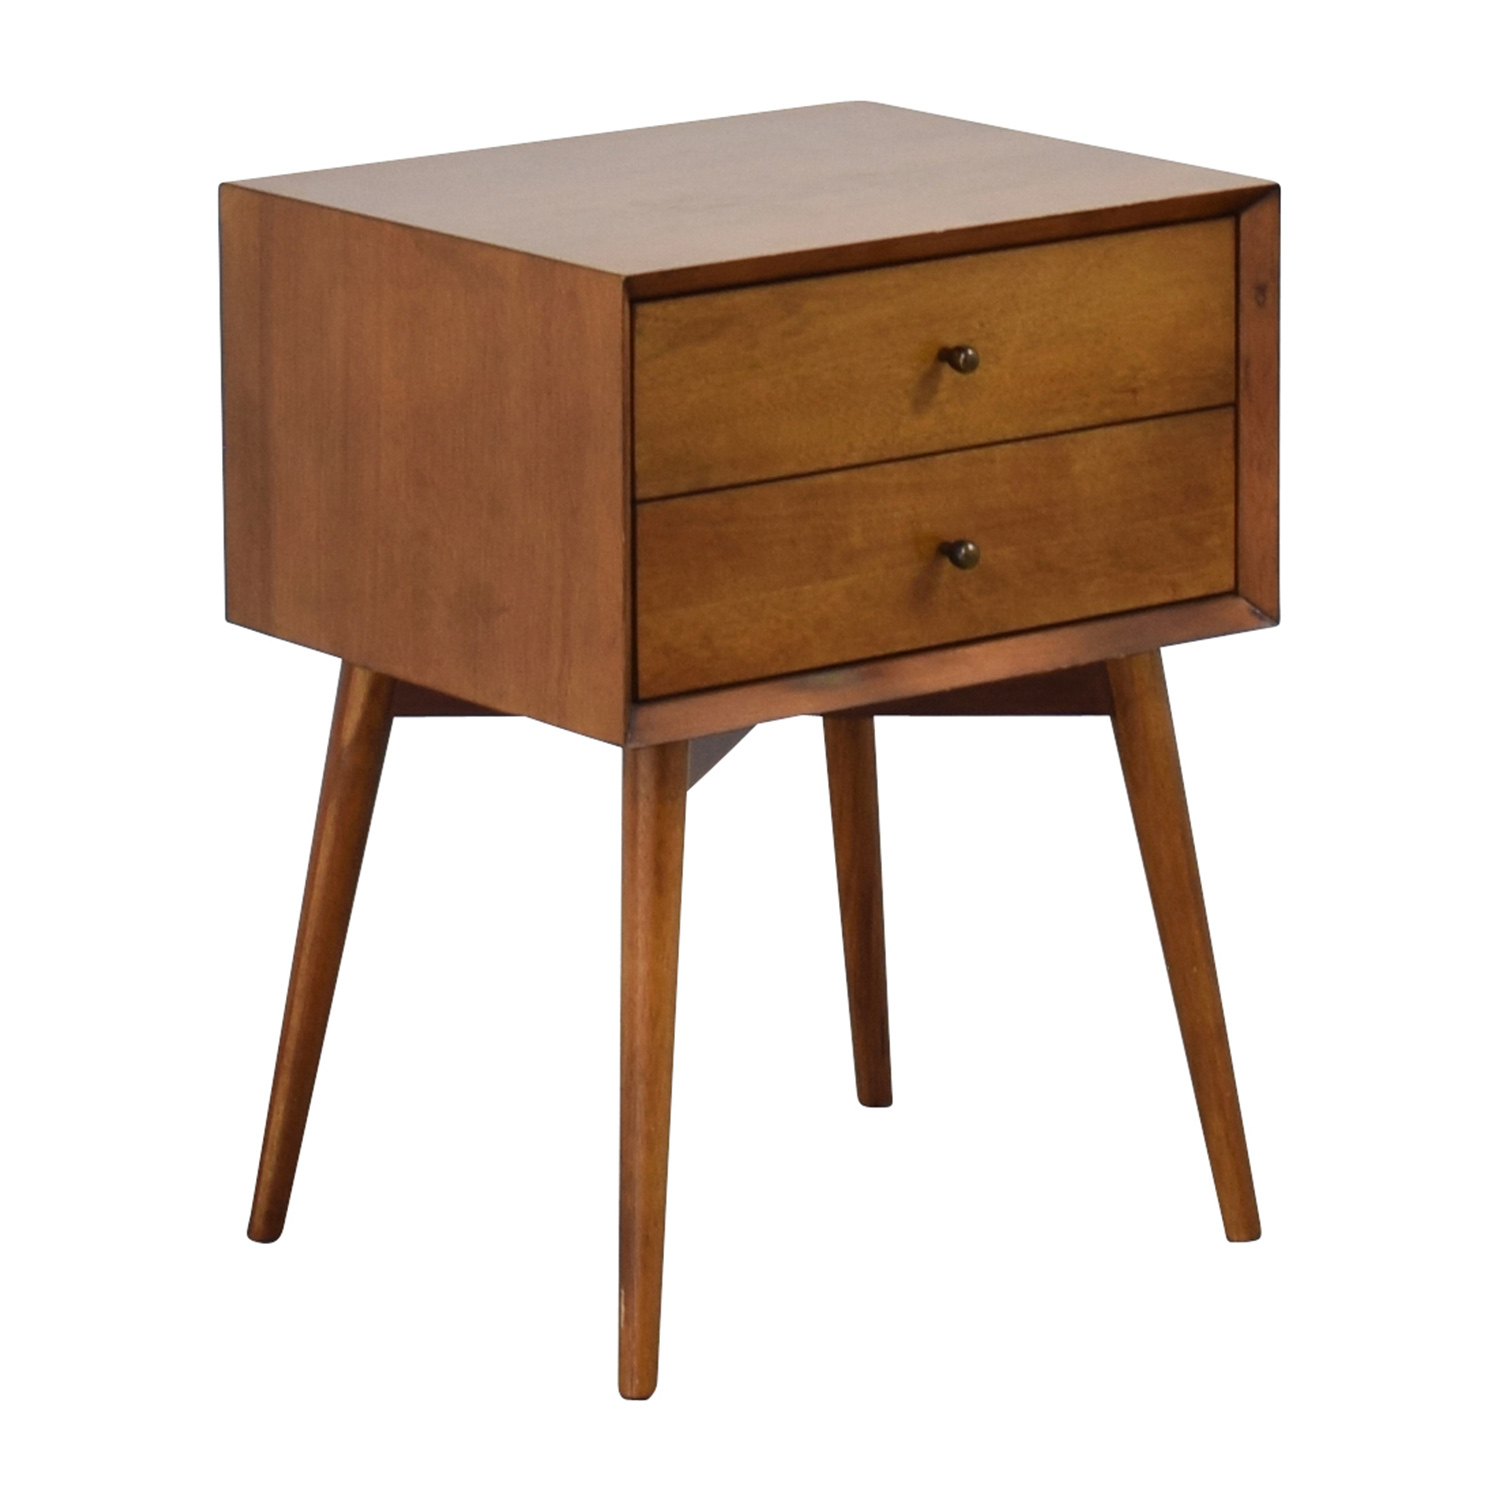 west elm end table 38% OFF   West Elm West Elm Mid Century Acorn Nightstand / Tables west elm end table